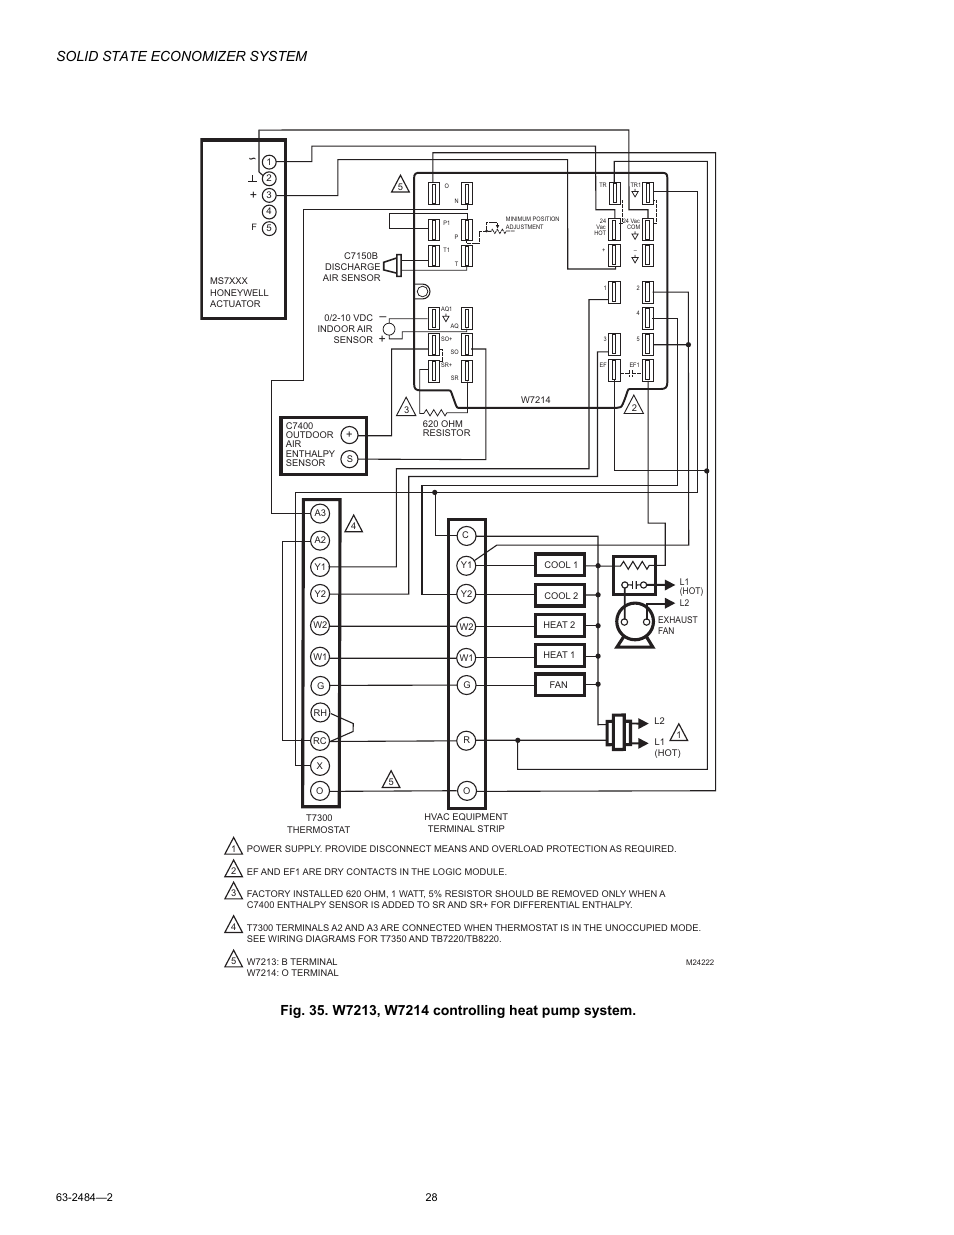 honeywell m8405 page28 solid state economizer system honeywell m8405 user manual page economizer wiring diagram at gsmx.co